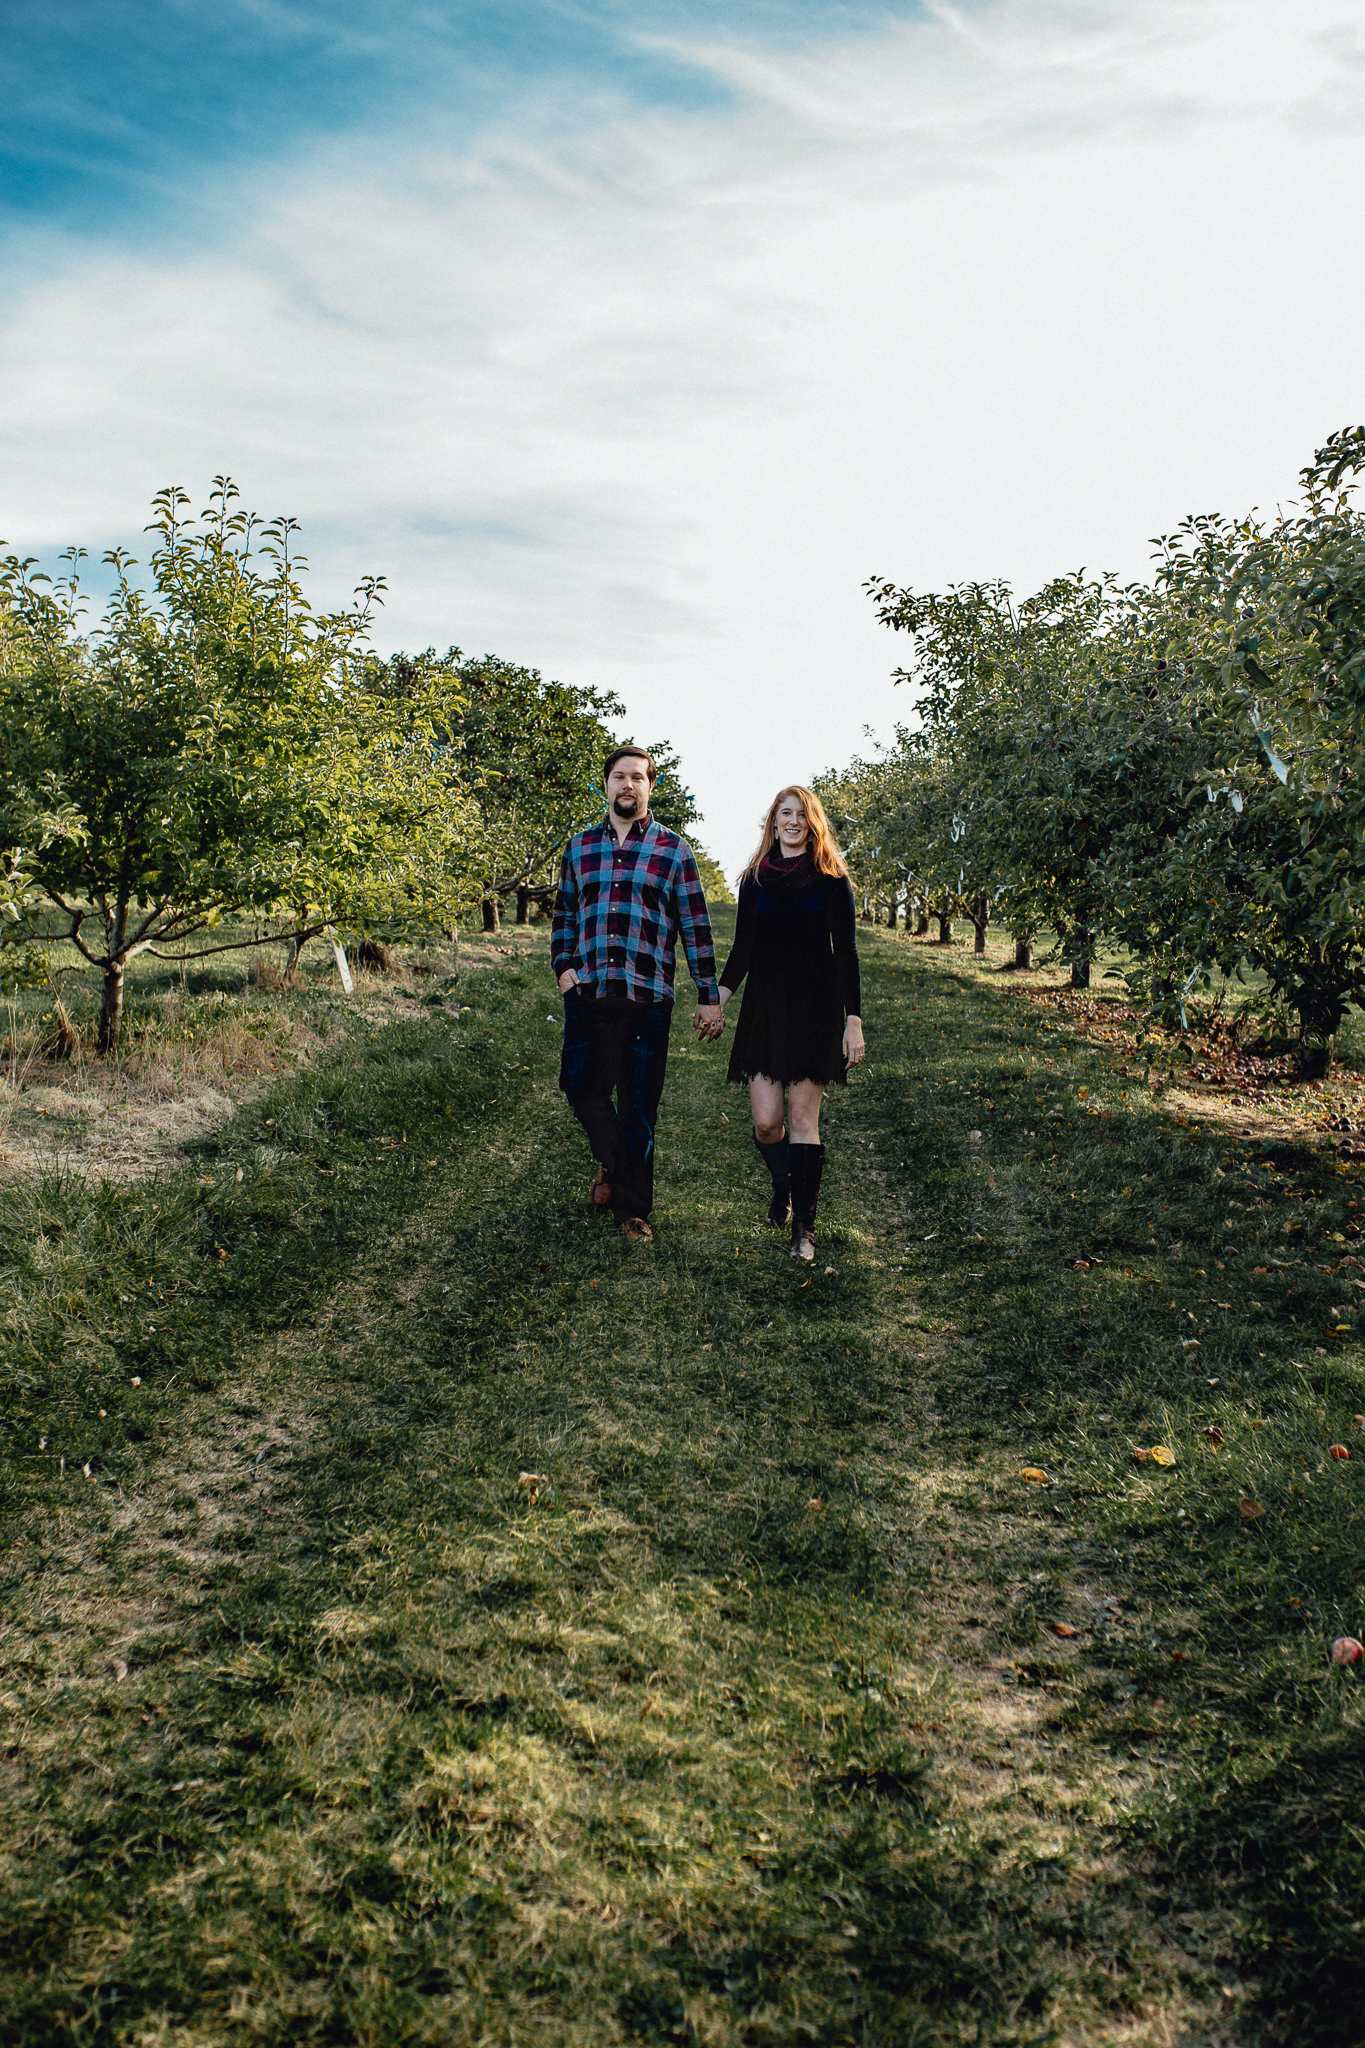 ENGAGEd-couple-in-apple-orchard.jpg